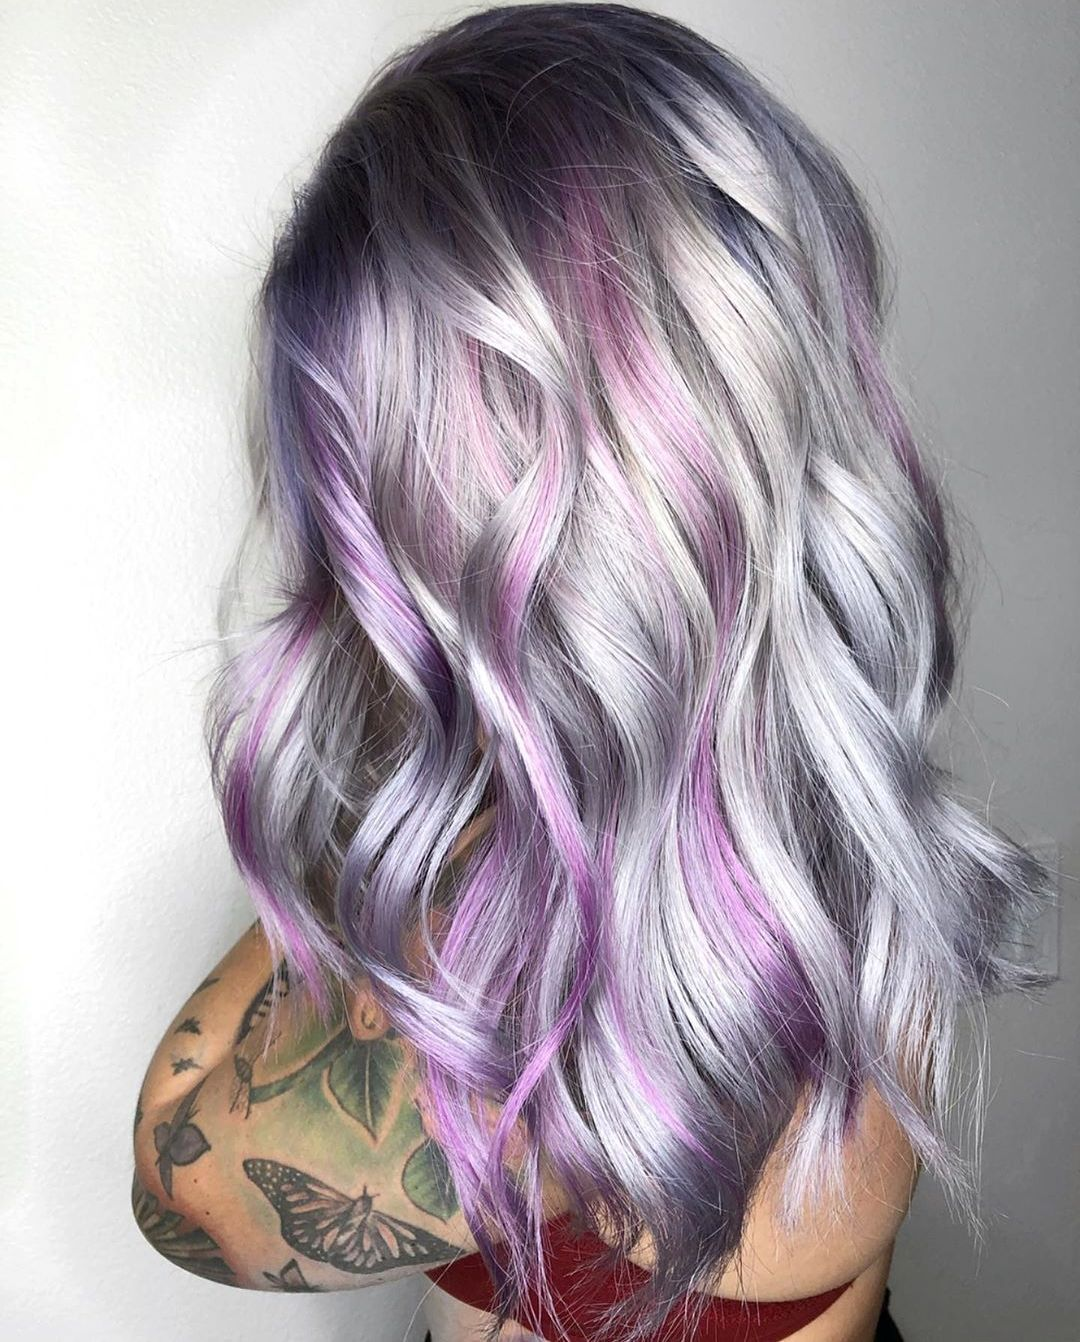 Silver Hair with Purple Streaks